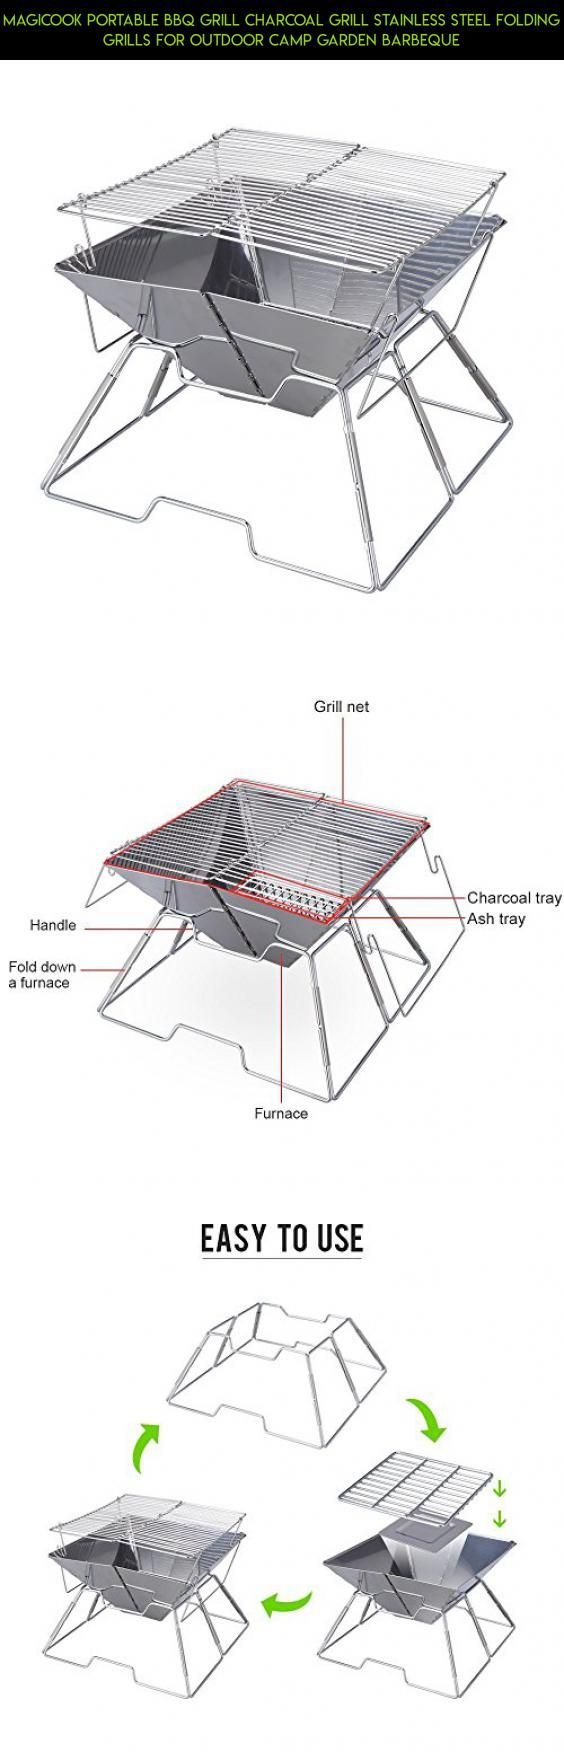 Magicook Portable BBQ Grill Charcoal Grill Stainless Steel Folding Grills for Outdoor Camp Garden Barbeque #kit #plans #technology #products #camera #gadgets #racing #fpv #bar #shopping #cooking #parts #drone #outdoor #tech